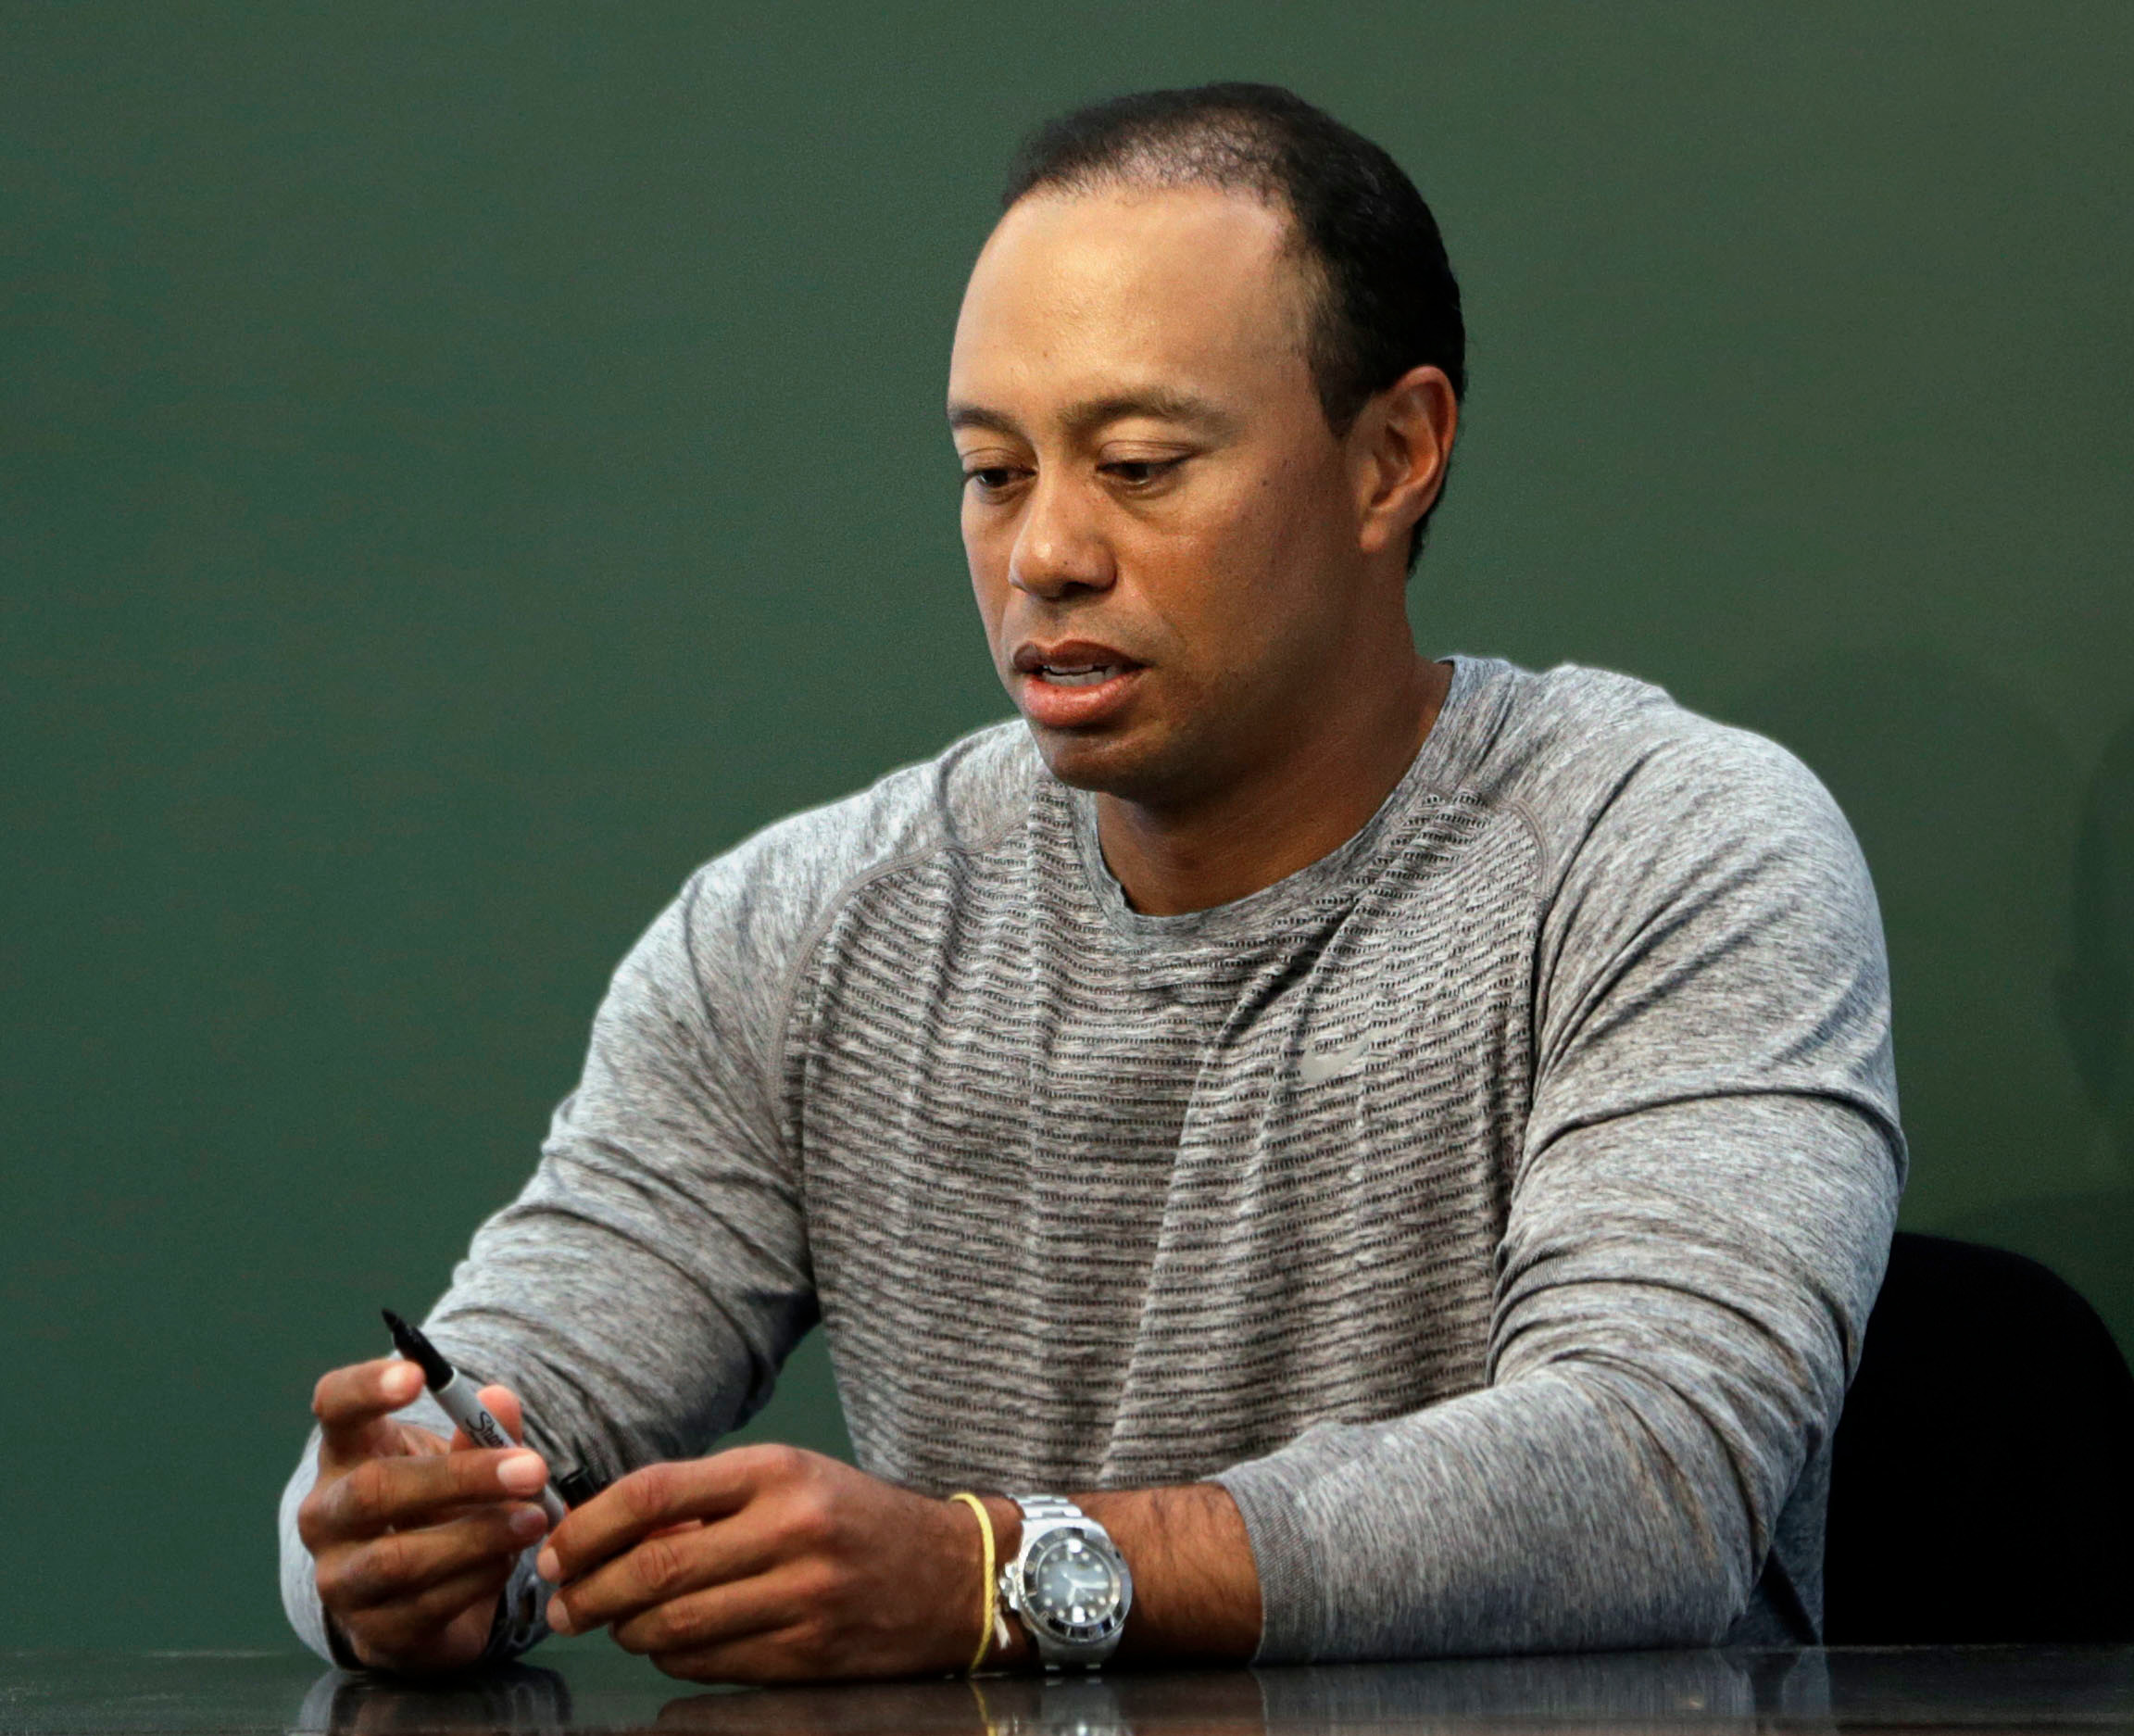 More video released from Tiger Woods arrest